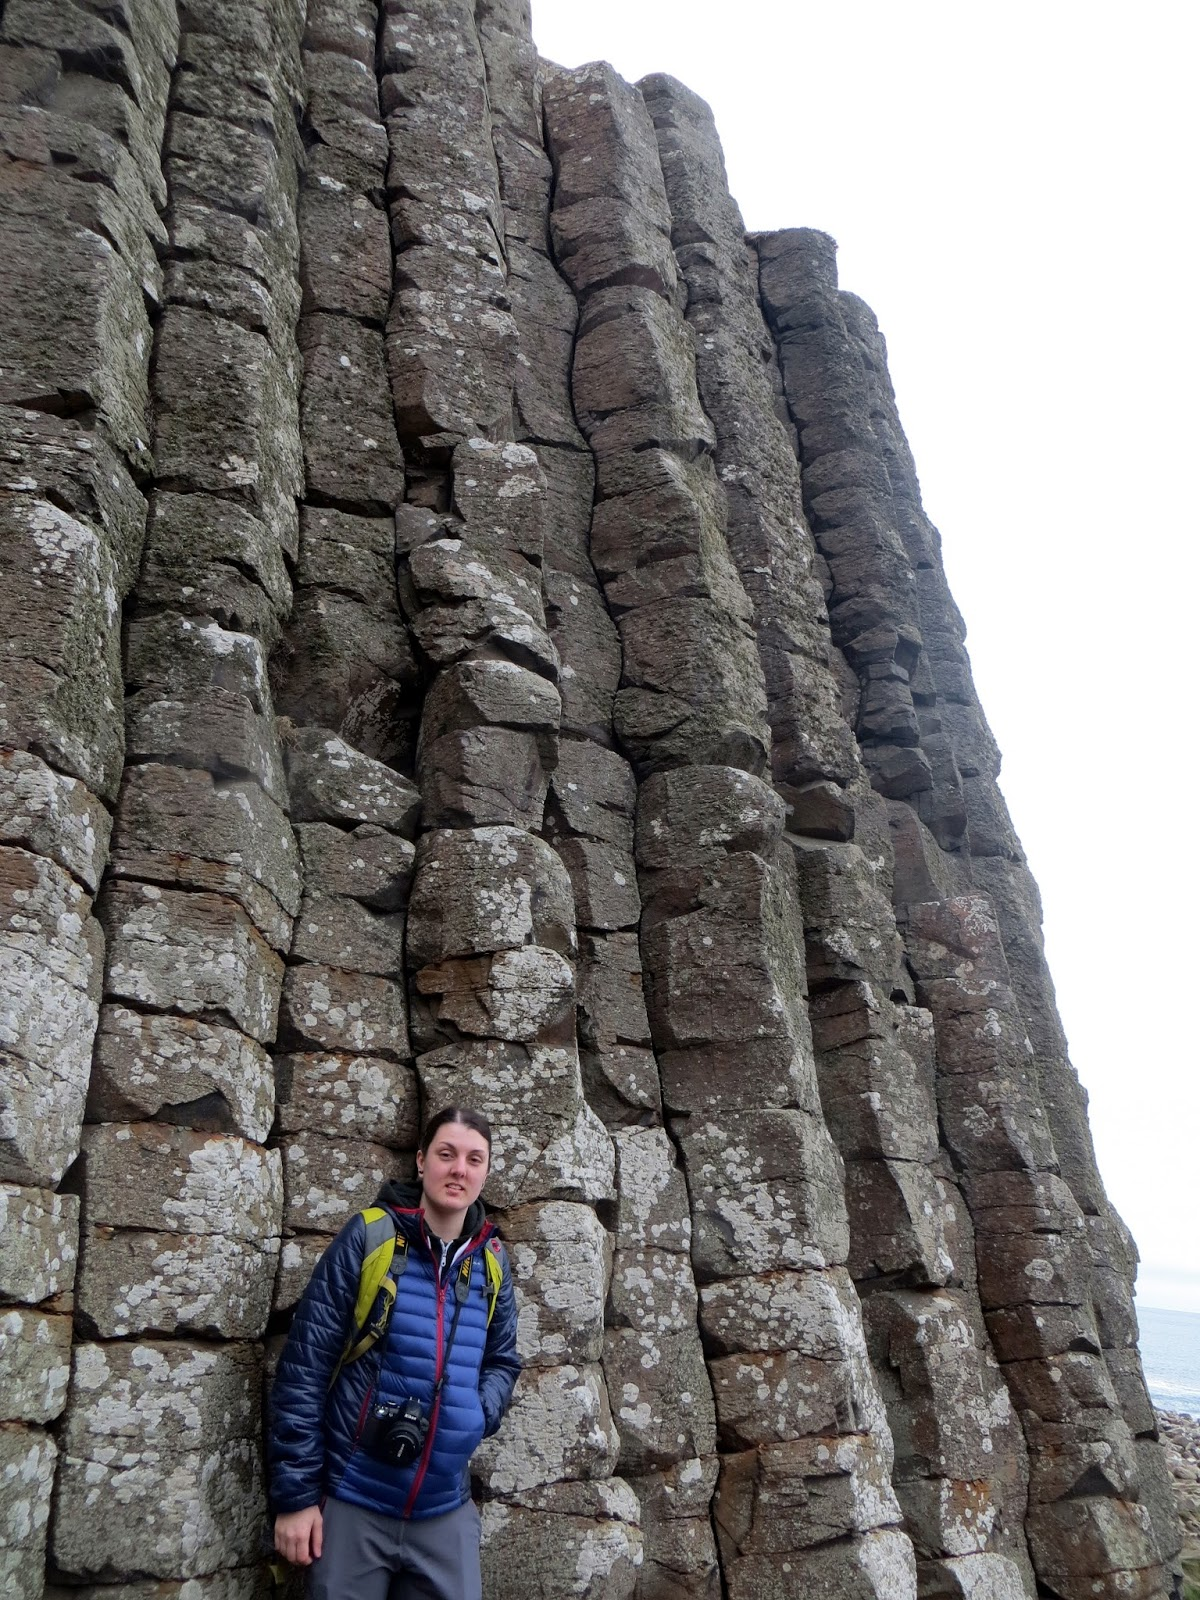 Nic Hilditch-Short, Giant's Causeway, Ireland, Northern Ireland, Basalt columns, volcanic rock, Antrim, causeway coast, amazing, places to see, bucket list, Ulster,